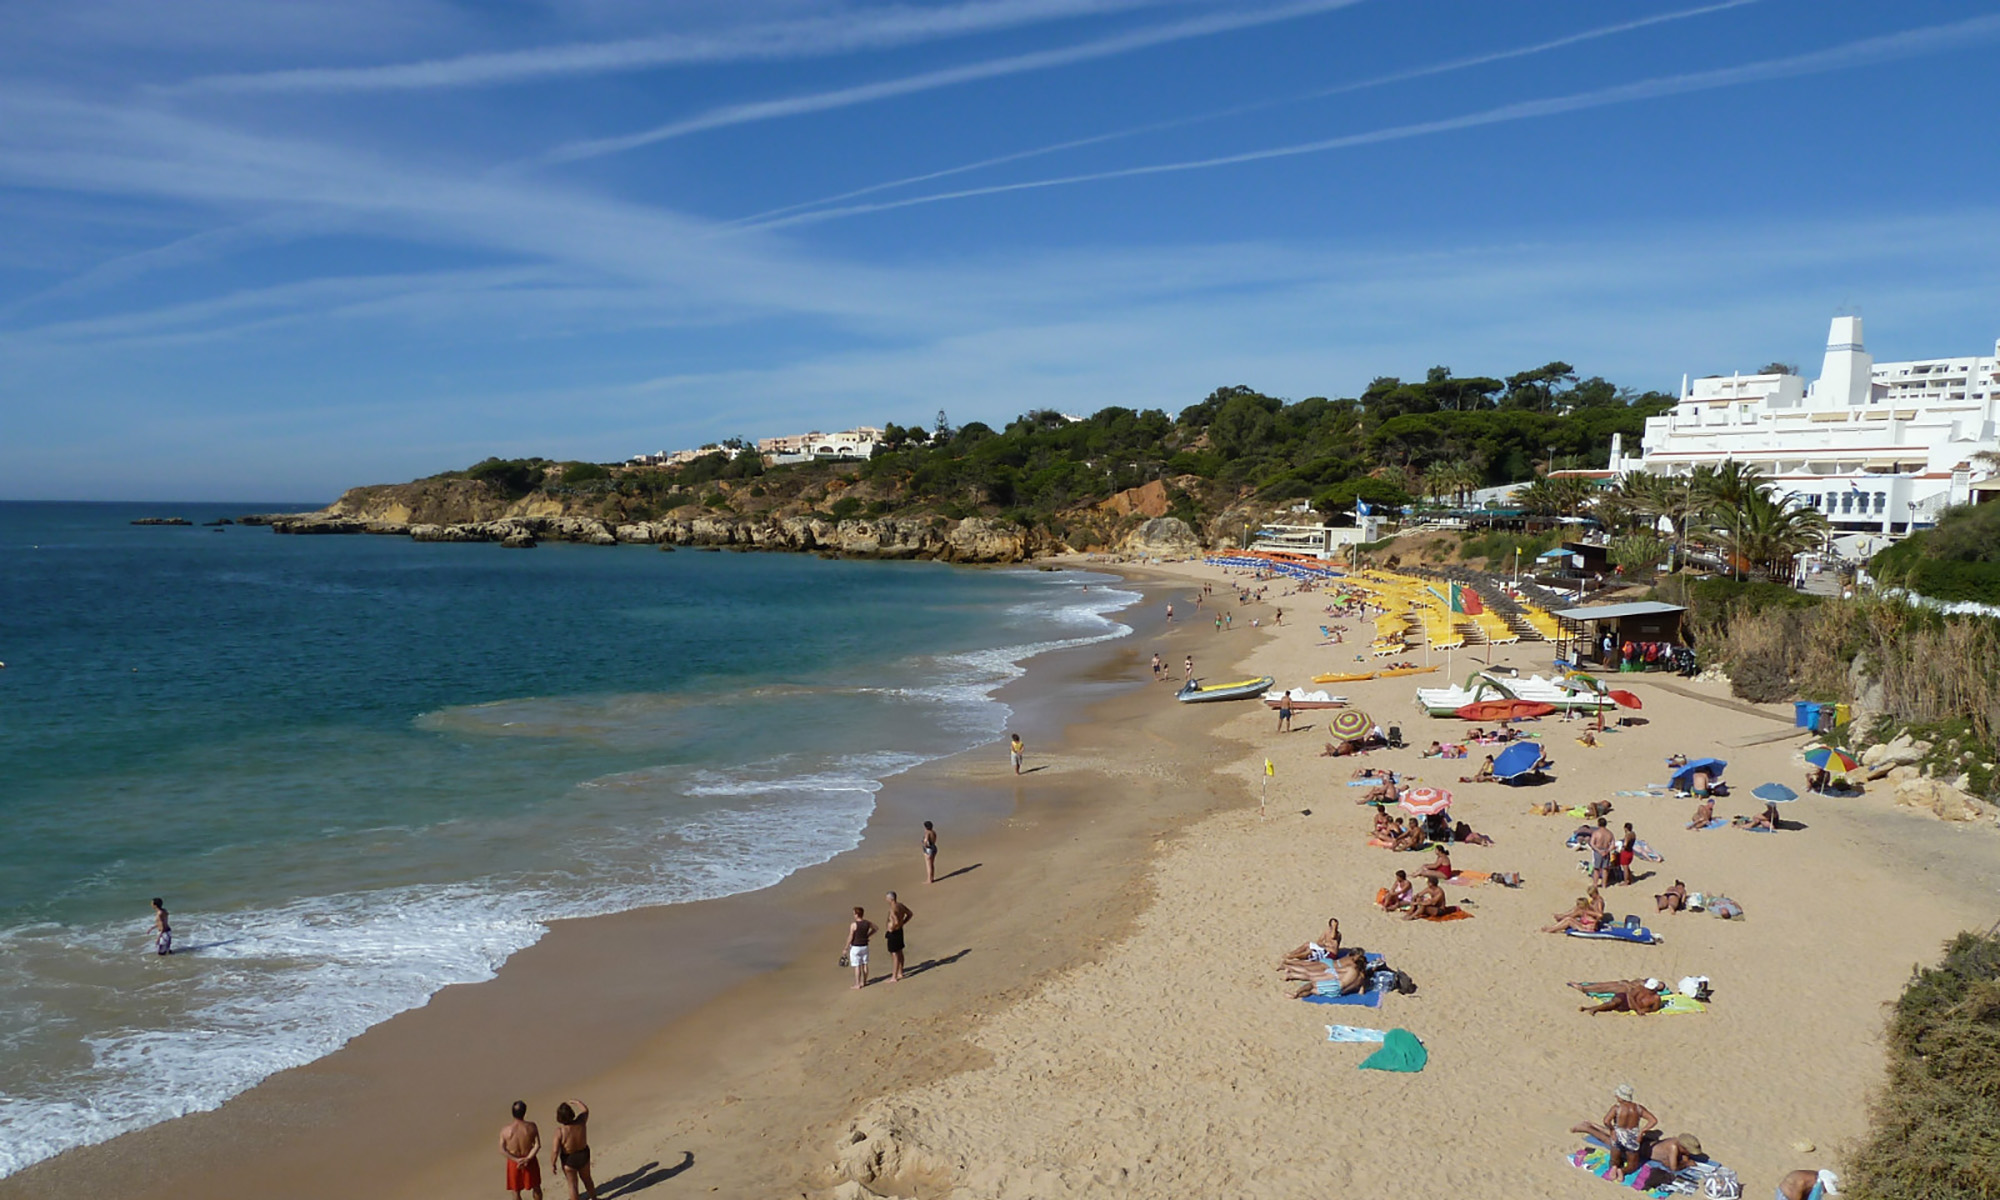 Praia Oura: Another enjoyable beach with many seafront restaurants. Only 4.2 km.